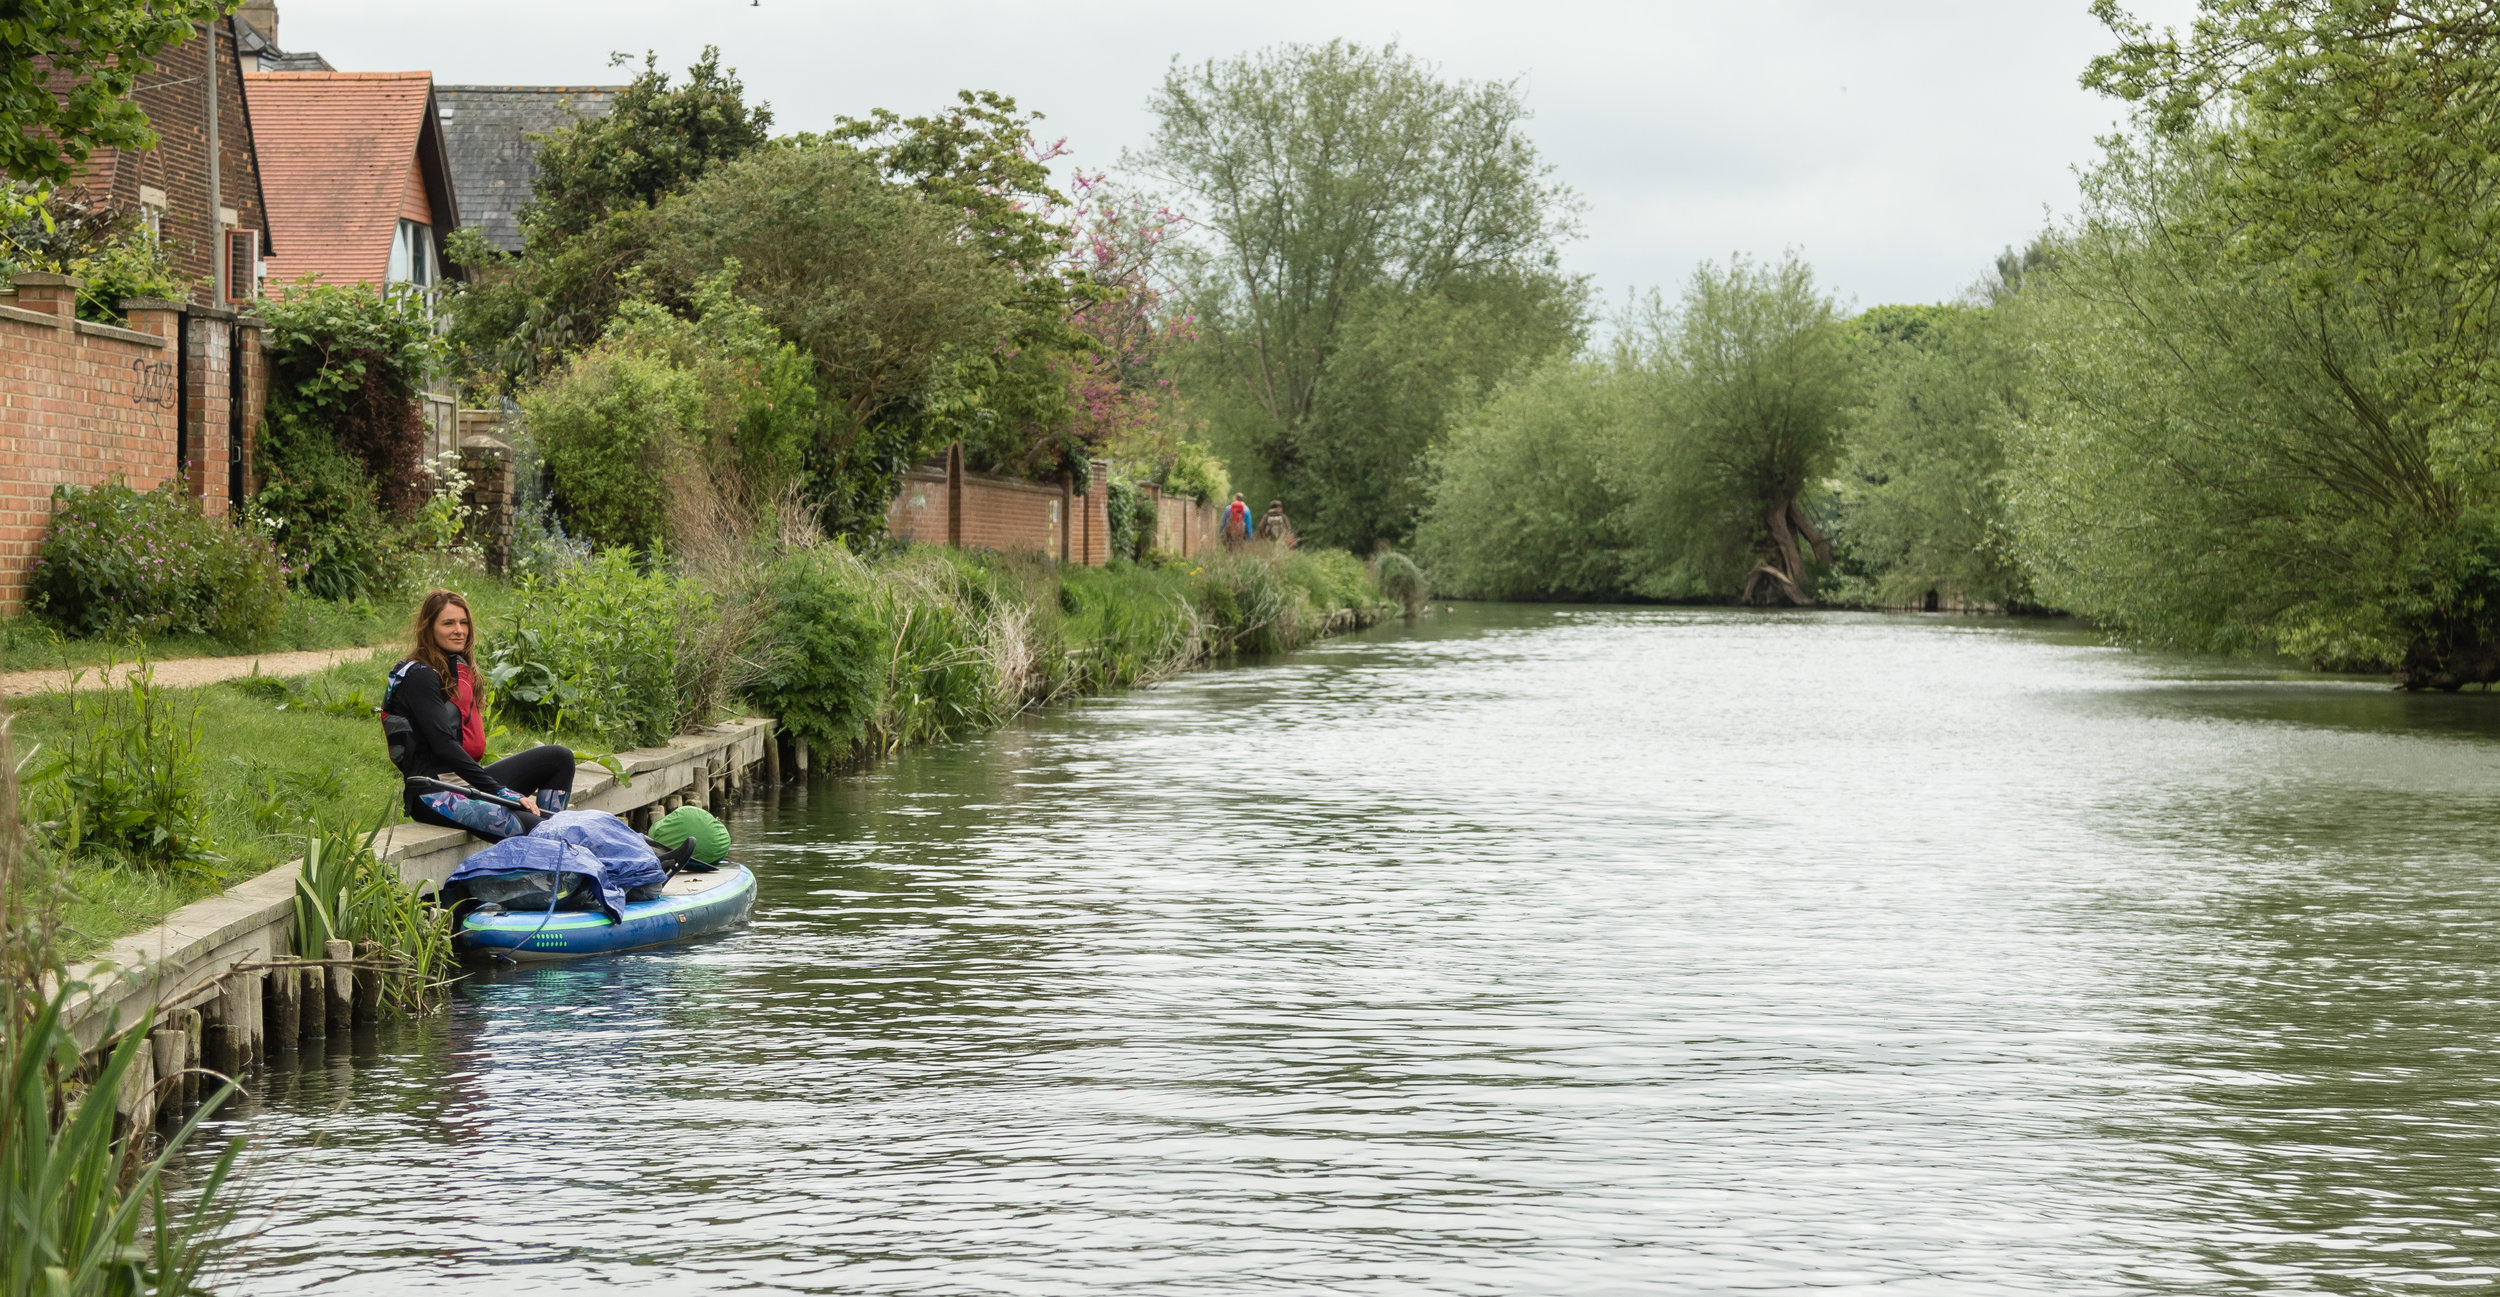 Paddle boarding in England